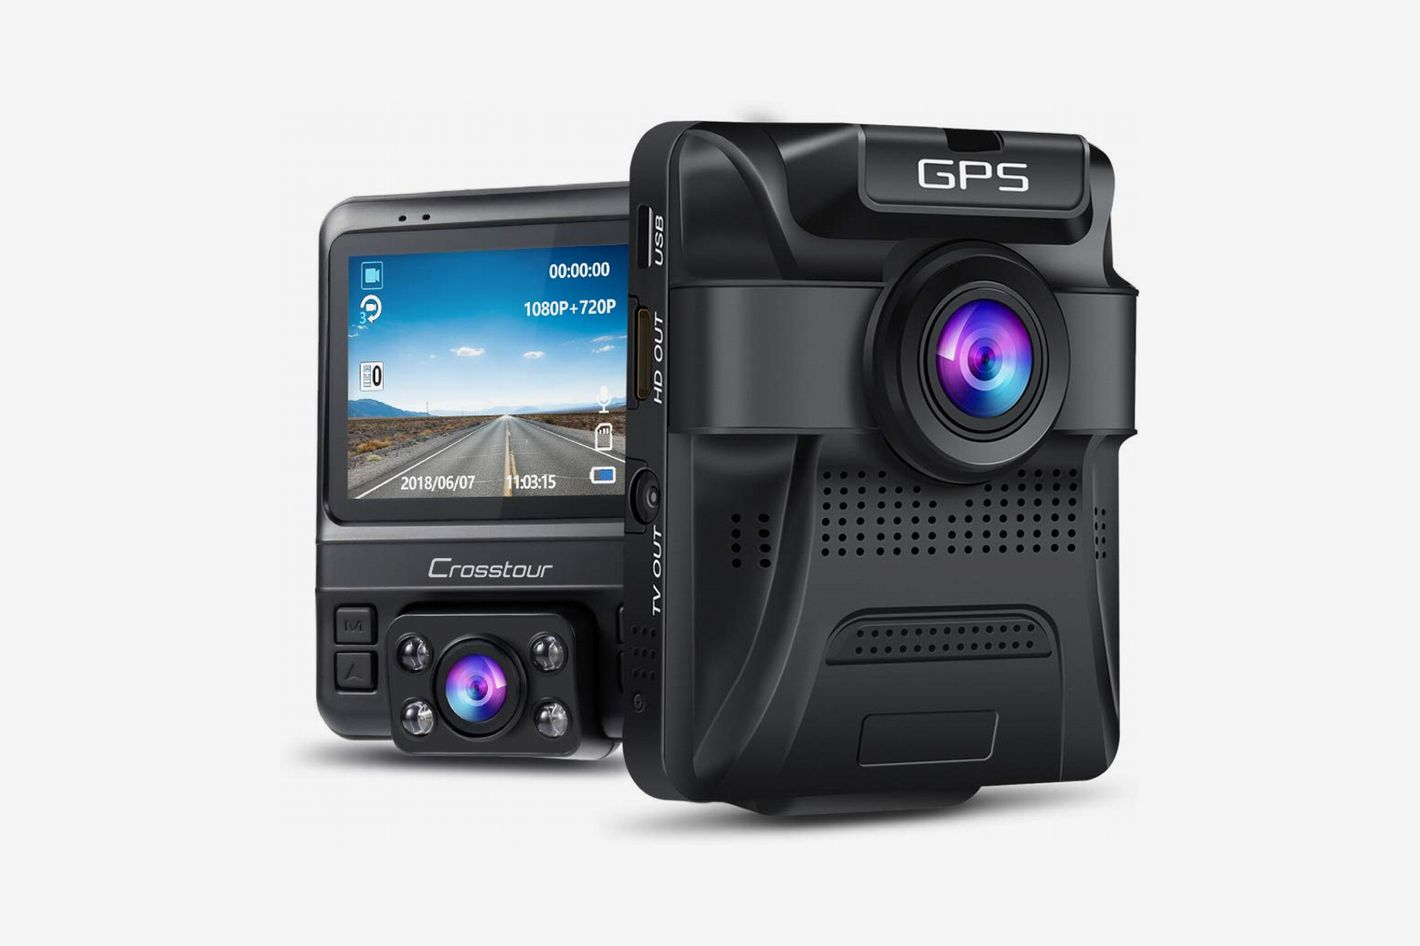 """Crosstour Dual Lens Dash Cam with Built-in GPS, 1080p Front and 720p Inside with Parking Monitoring, Infrared Night Vision, 2.4"""" Screen"""